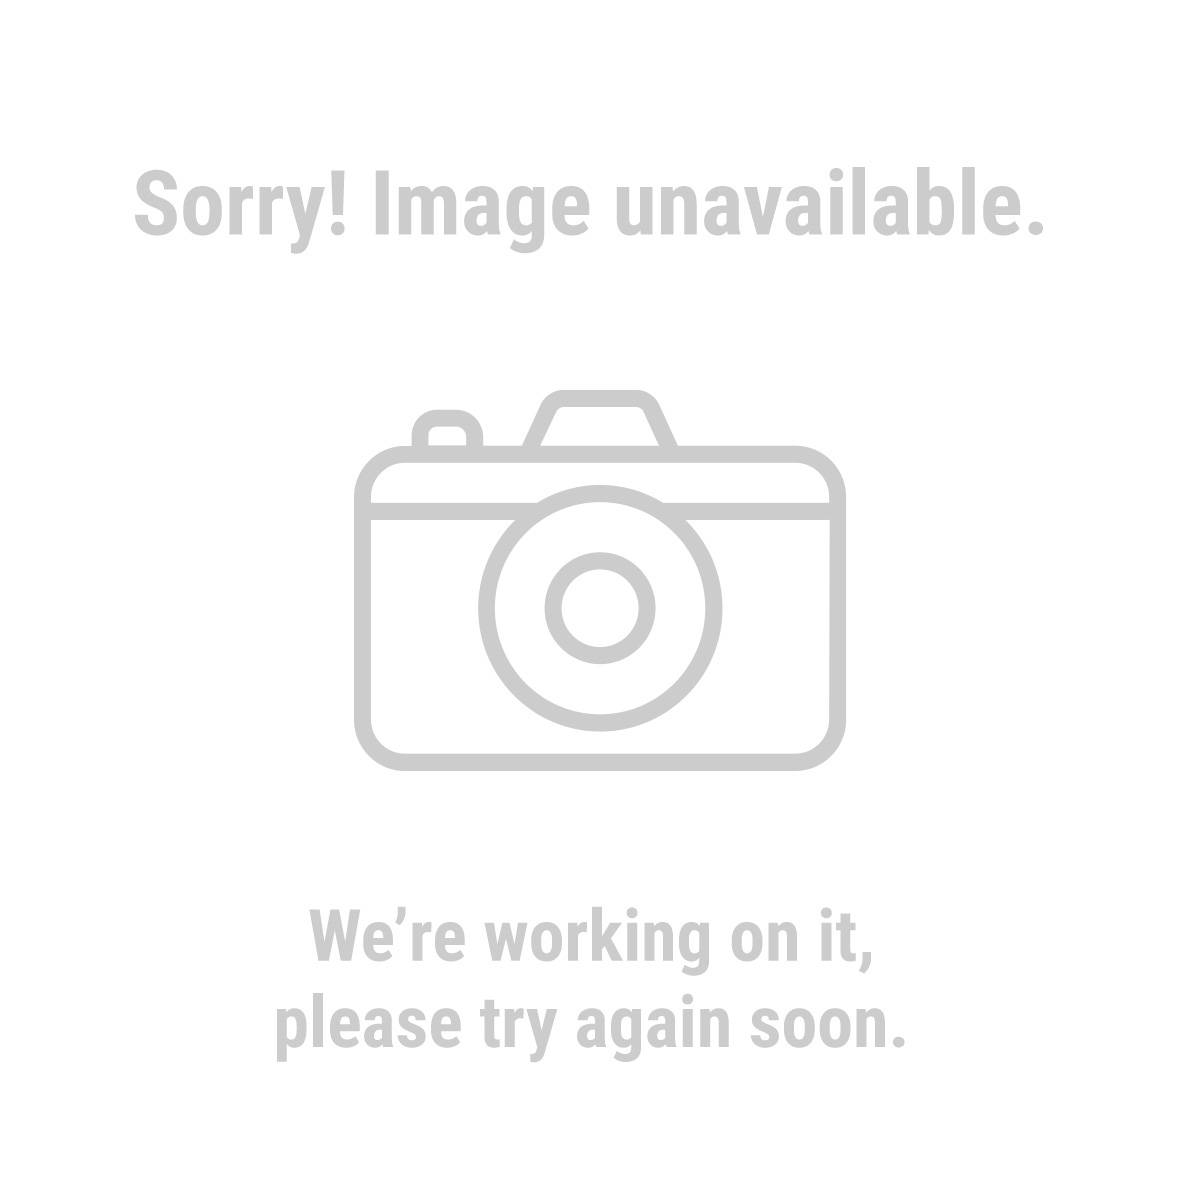 Windsor Design 93454 Workbench with 4 Drawers, 60""